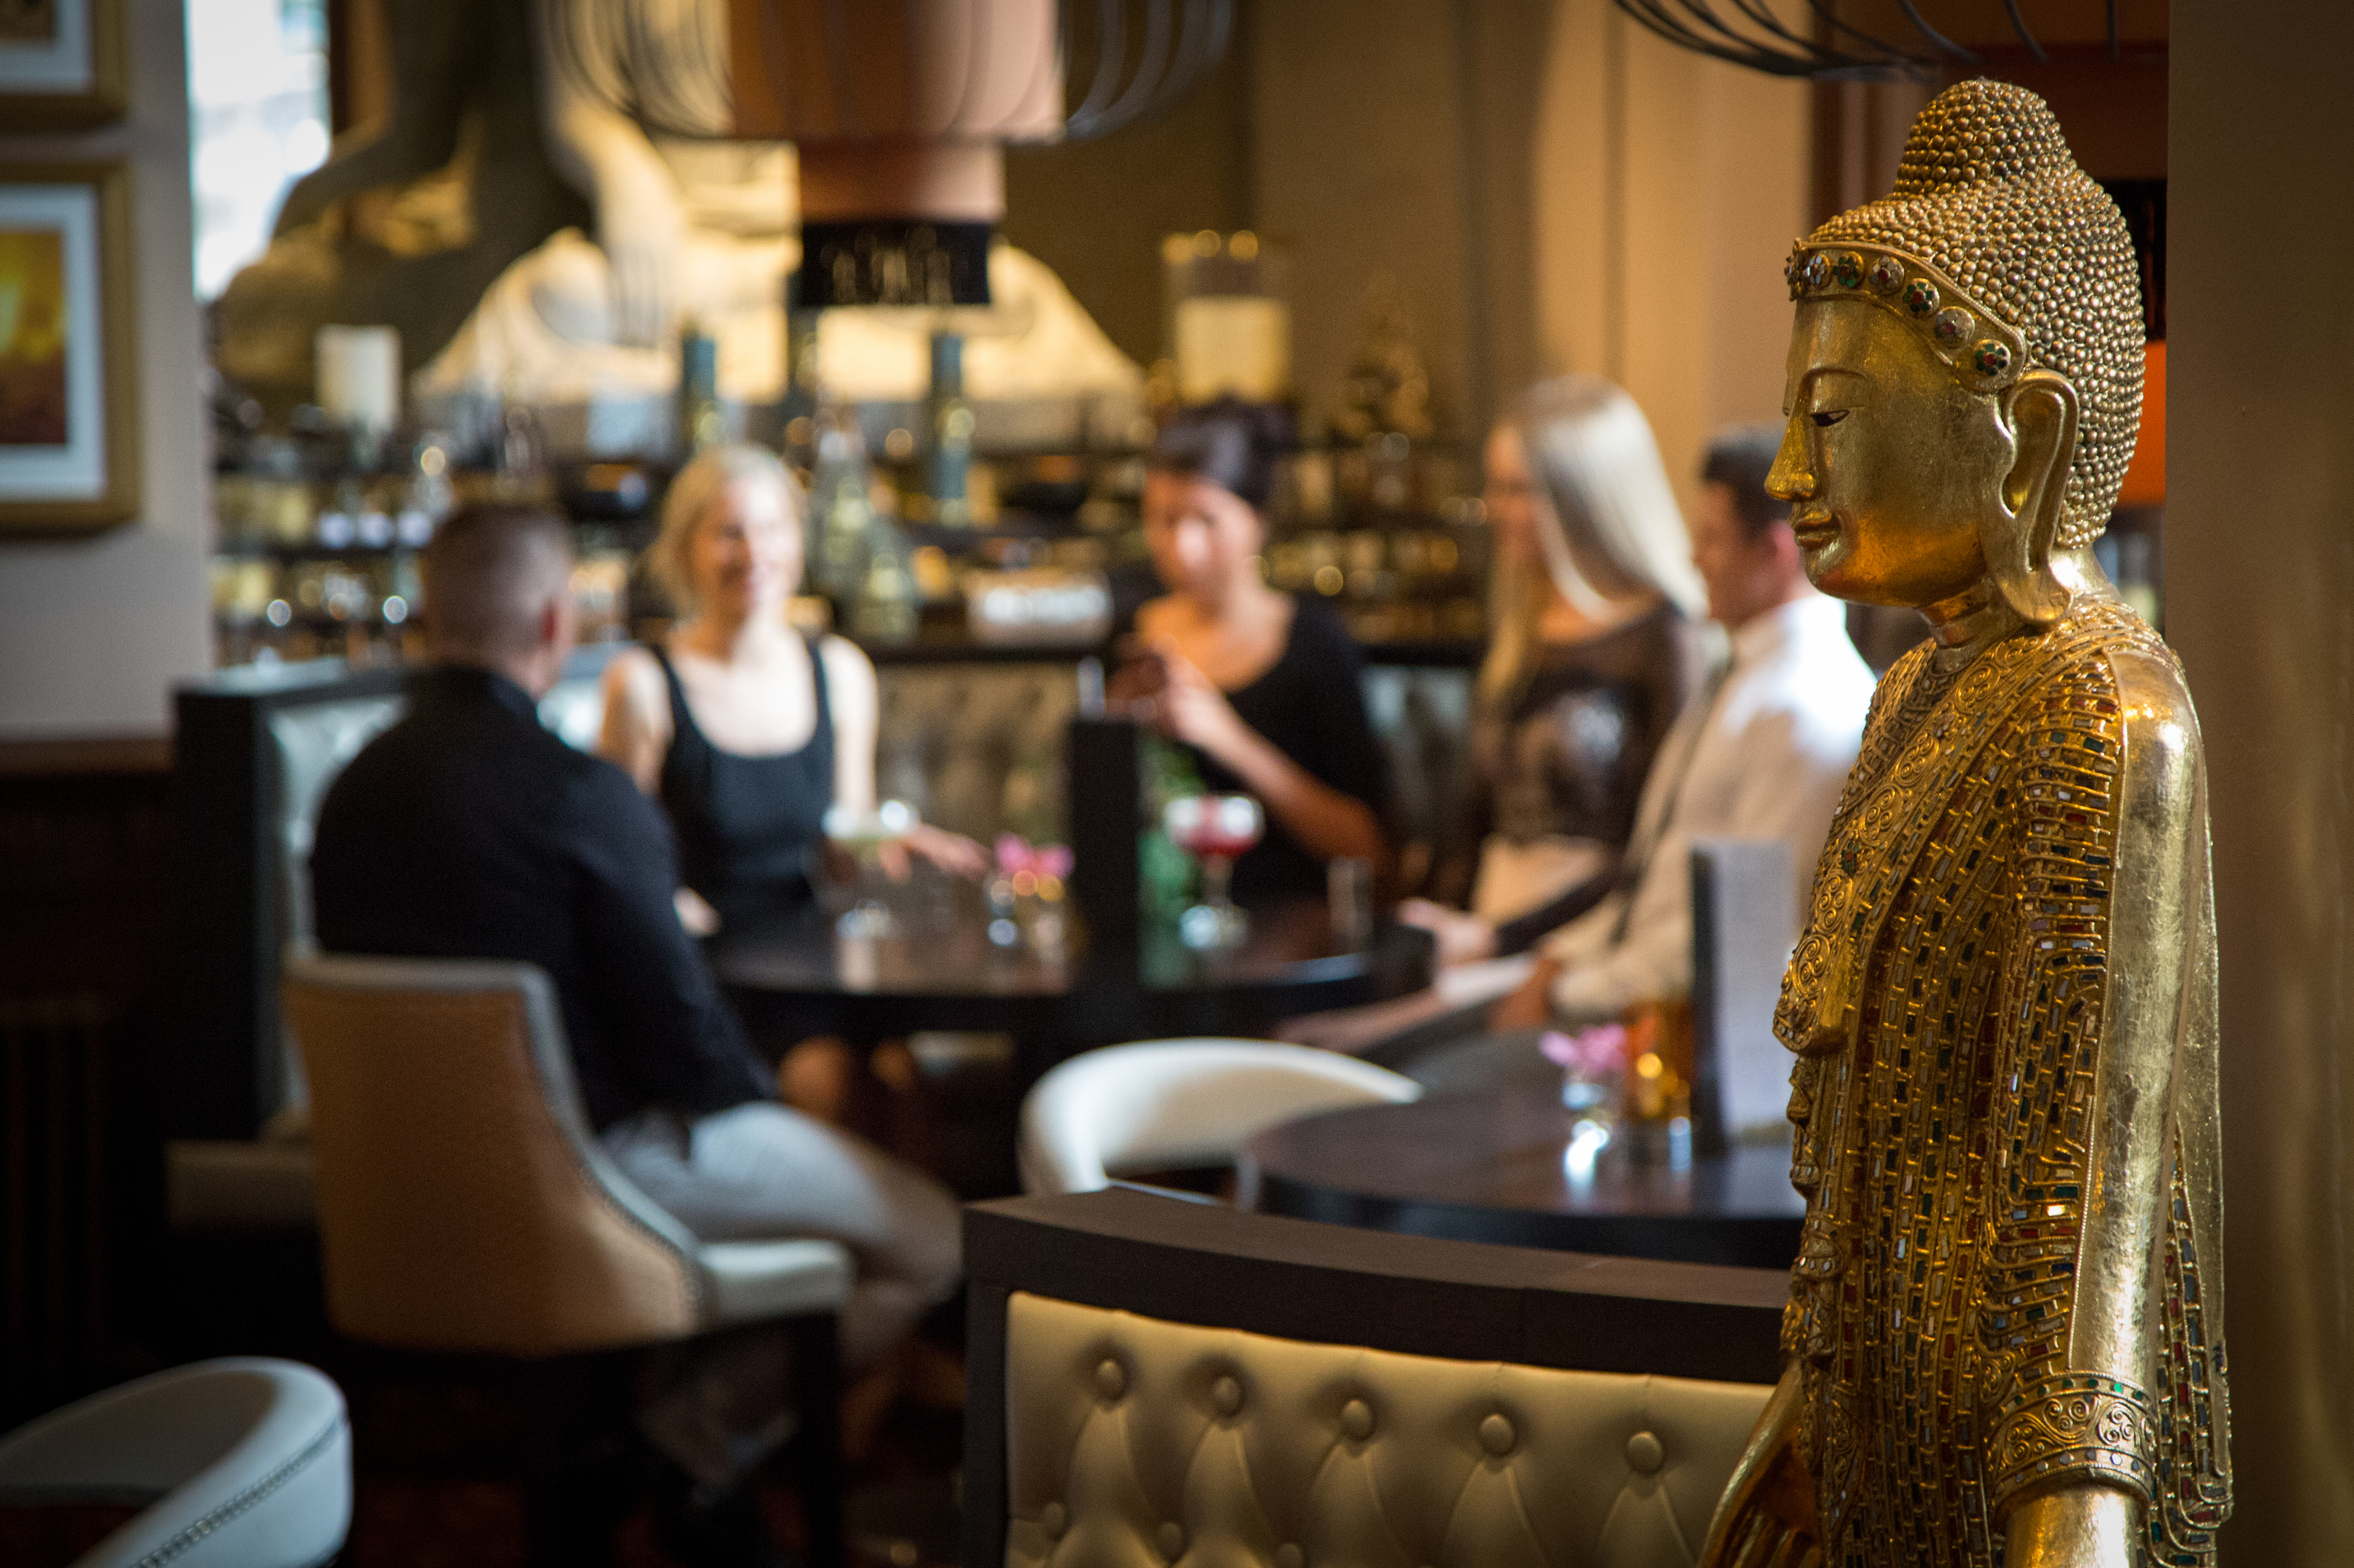 Chaophraya brings eclectic Thai dishes, opulent decor and renounced Thai hospitality to the heart of Aberdeen